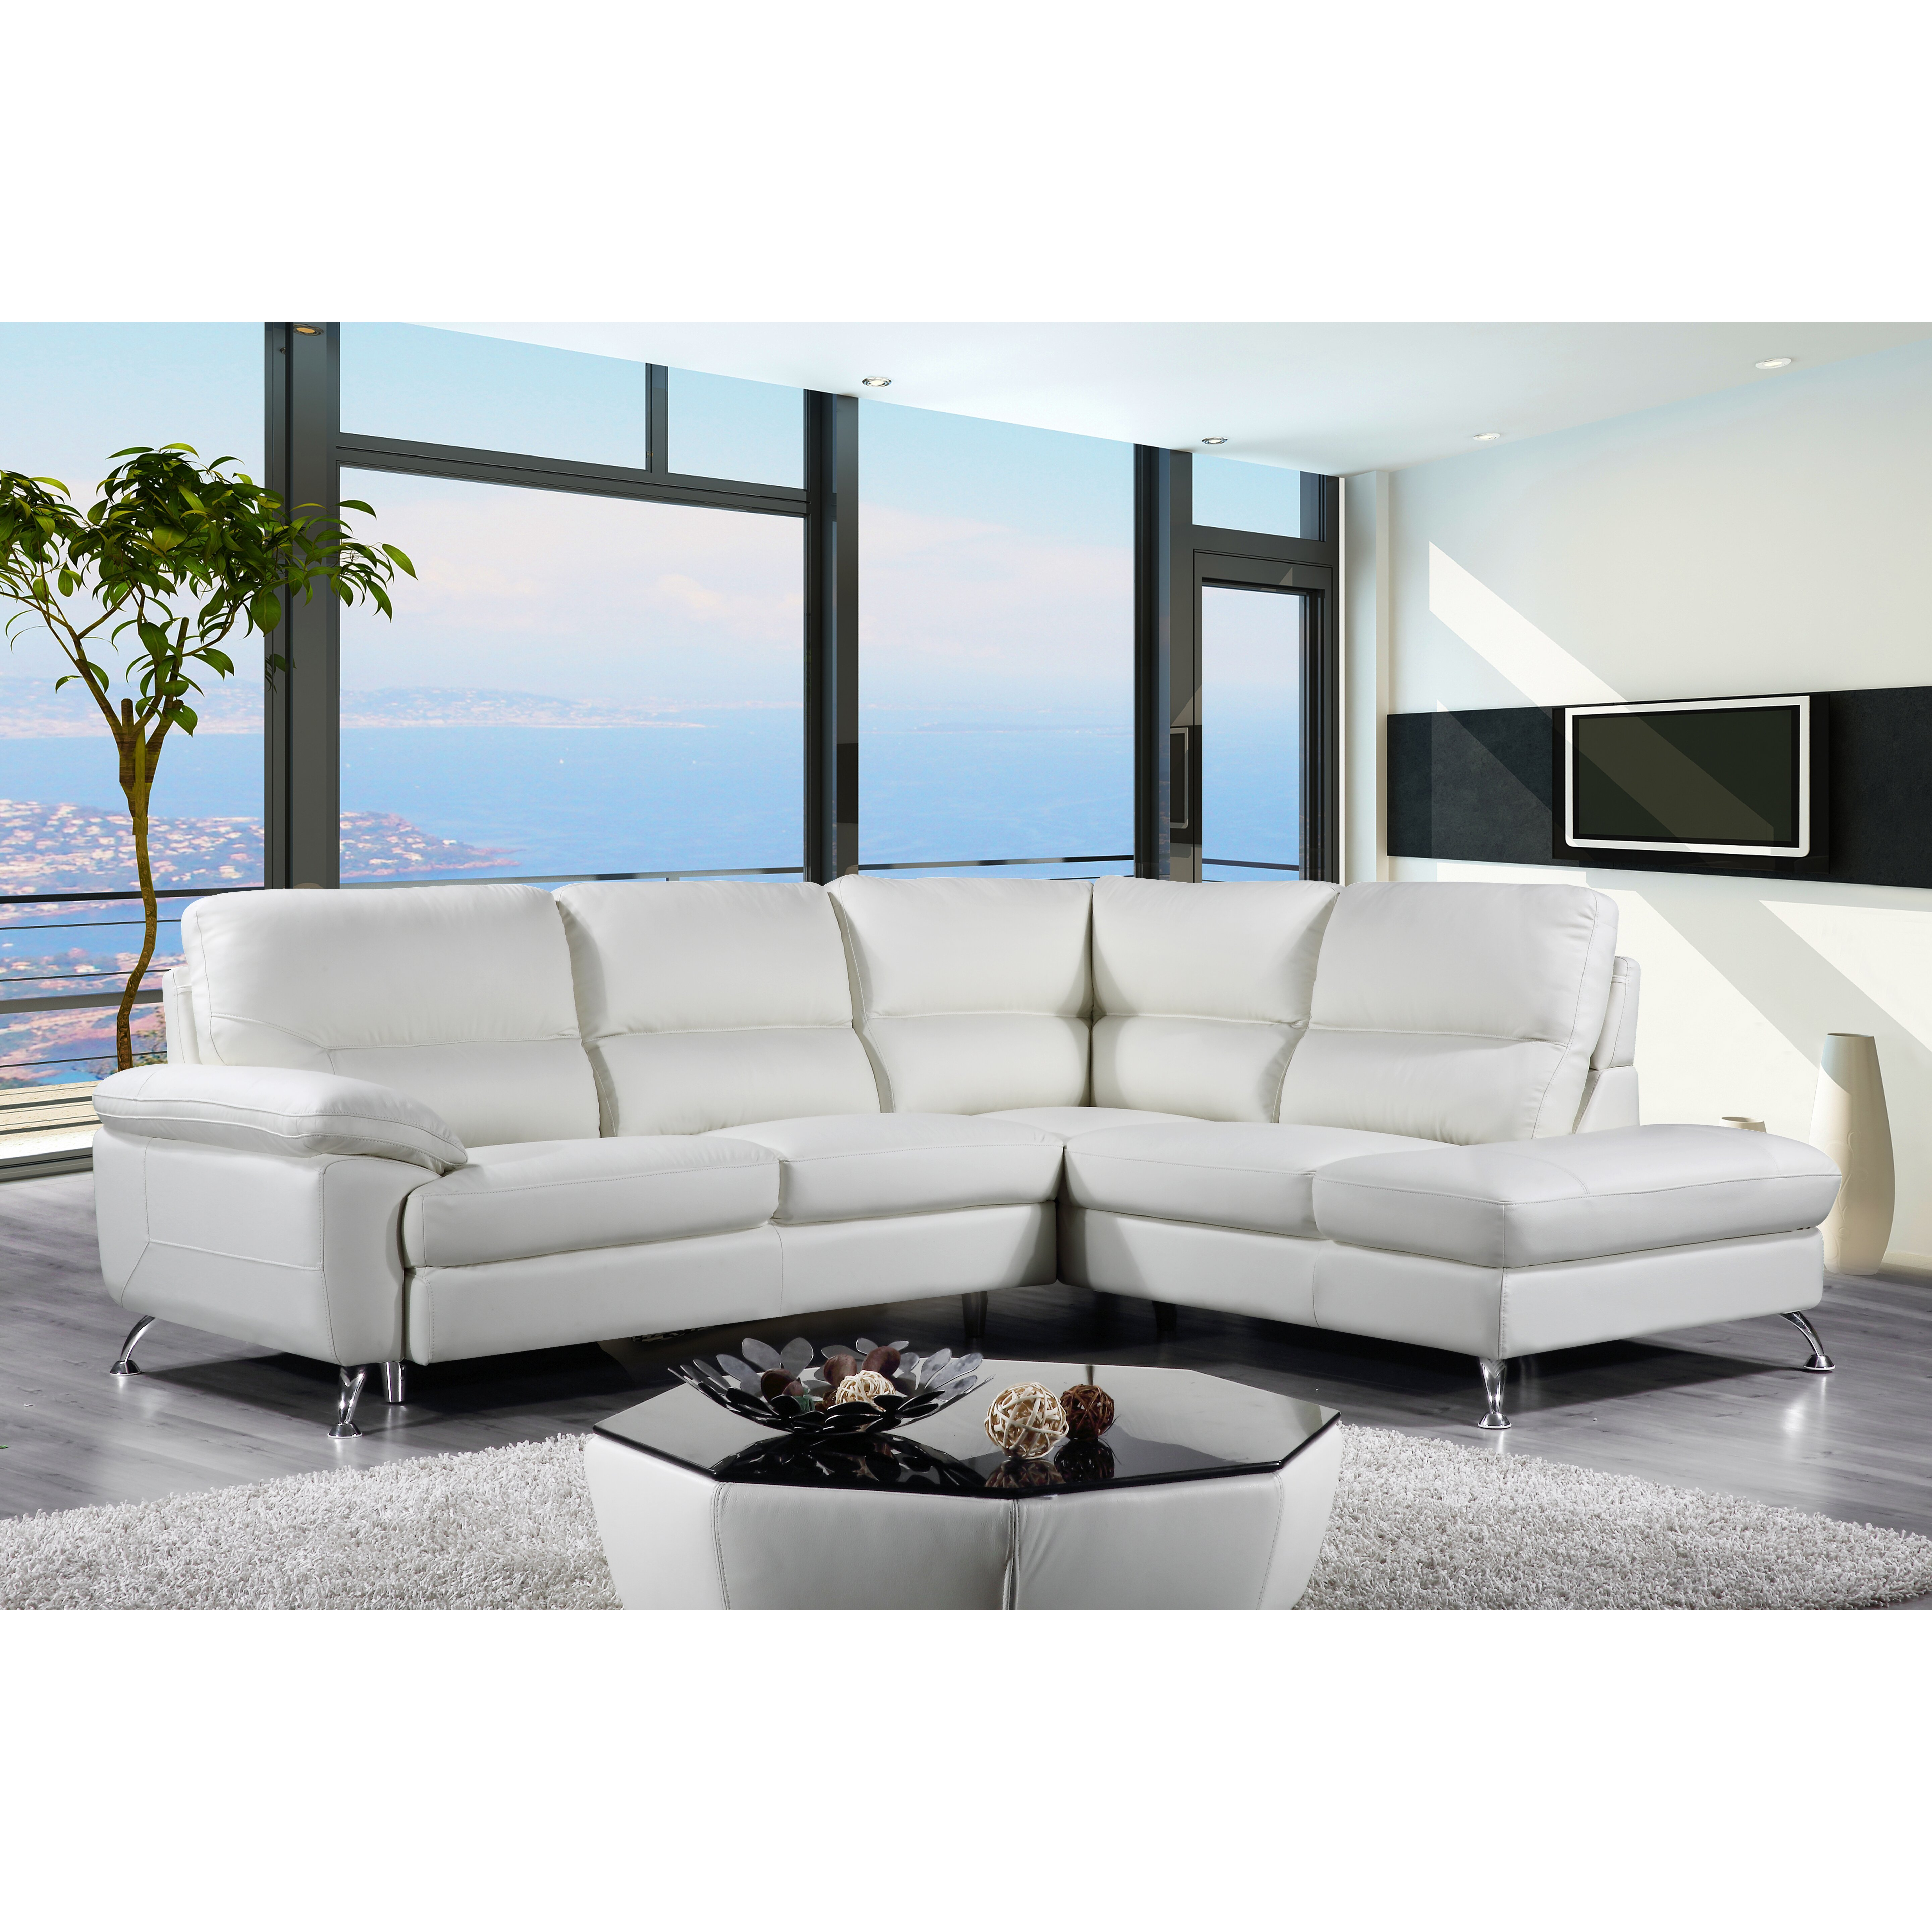 Cortesi home miami sectional wayfair for Sectional couches in miami